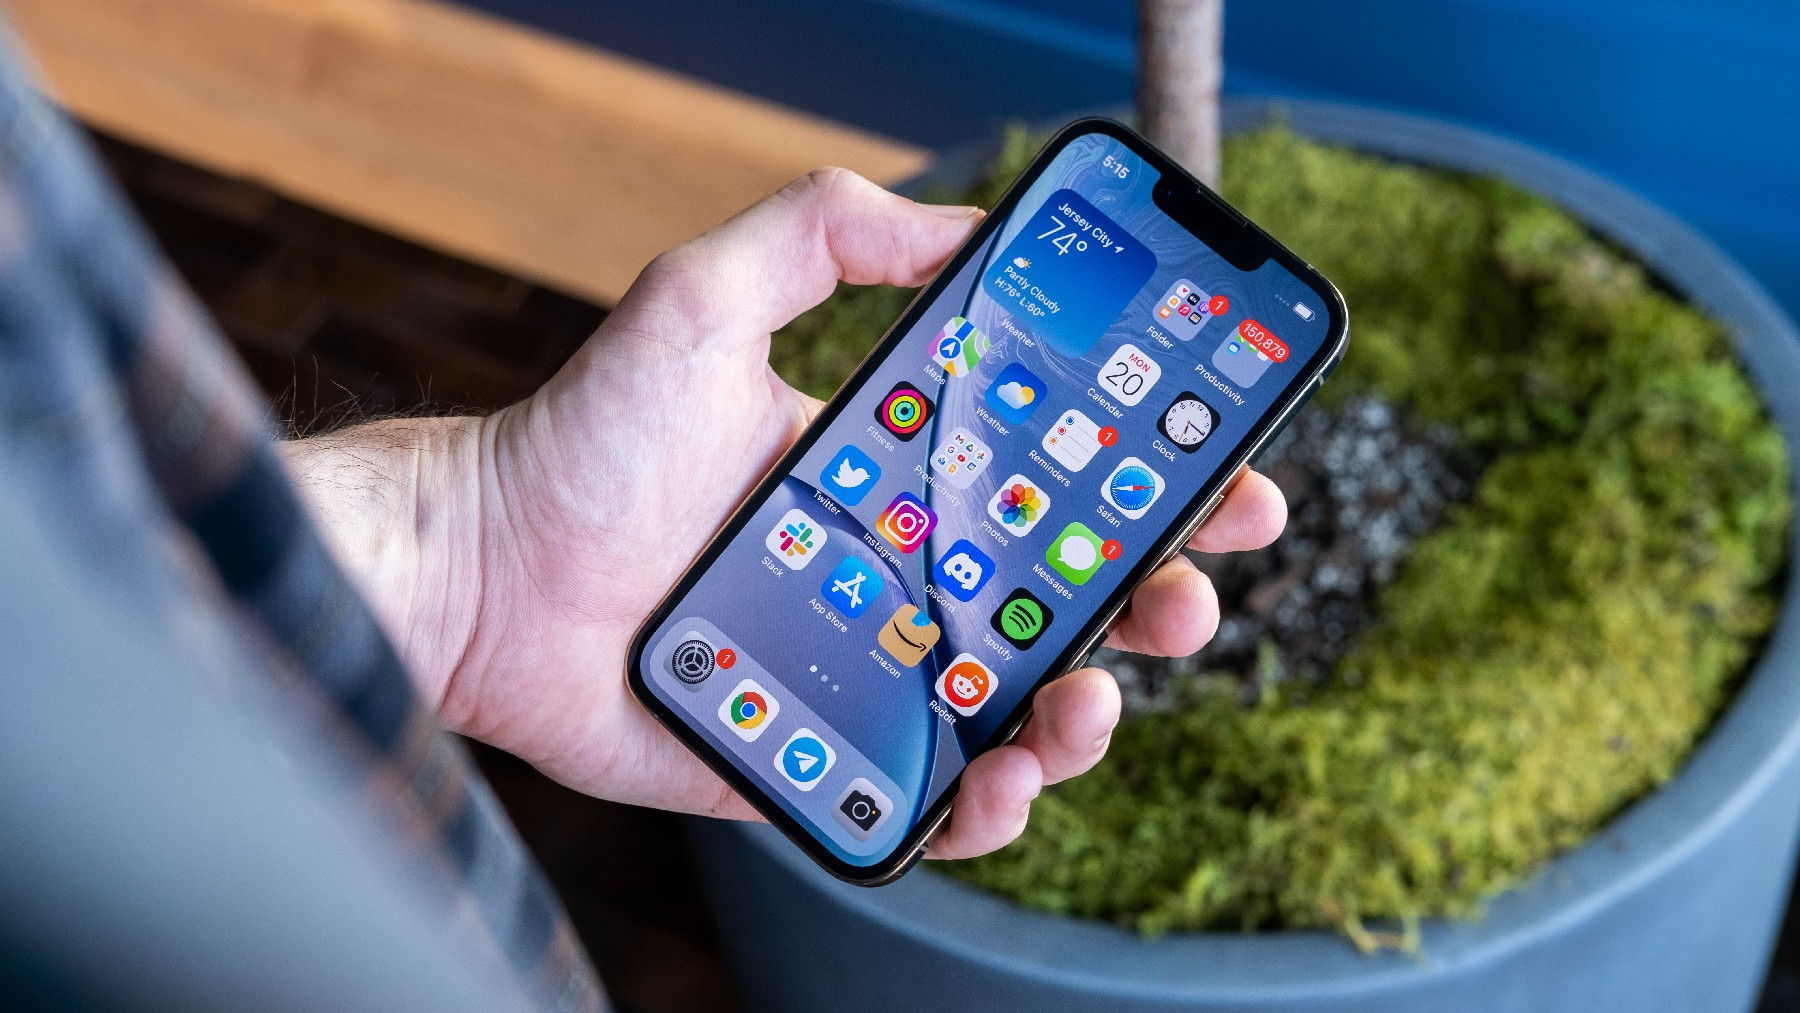 iPhone 13 Pro's 120Hz display limits some third-party app animations to 60Hz